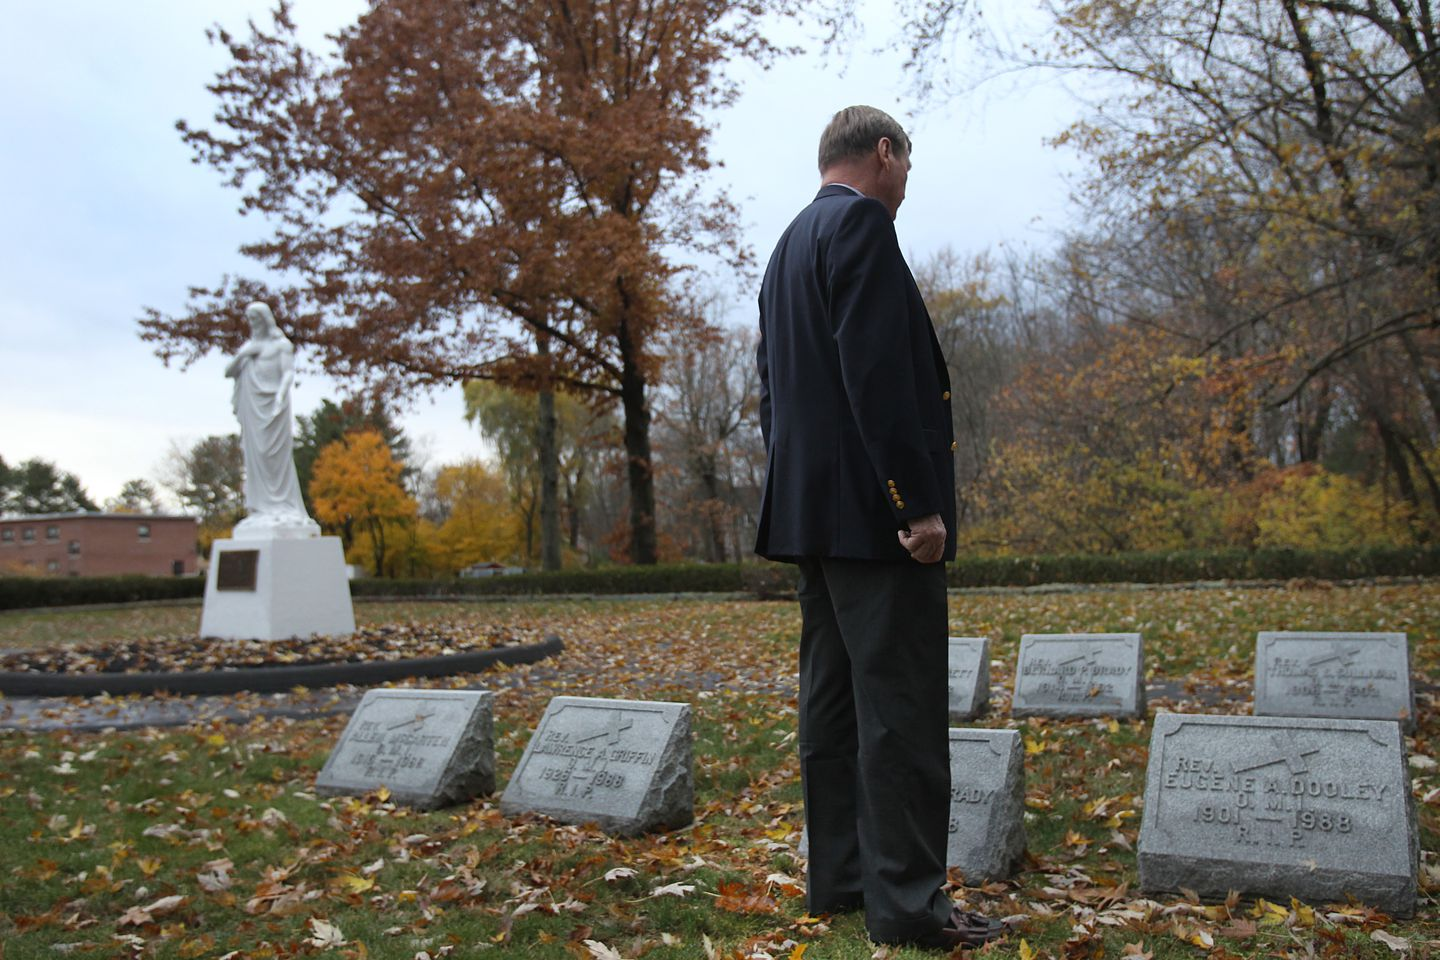 Jim Graham visited the grave of the man he believes was his father, the Rev. Thomas S. Sulllivan, in Tewksbury.